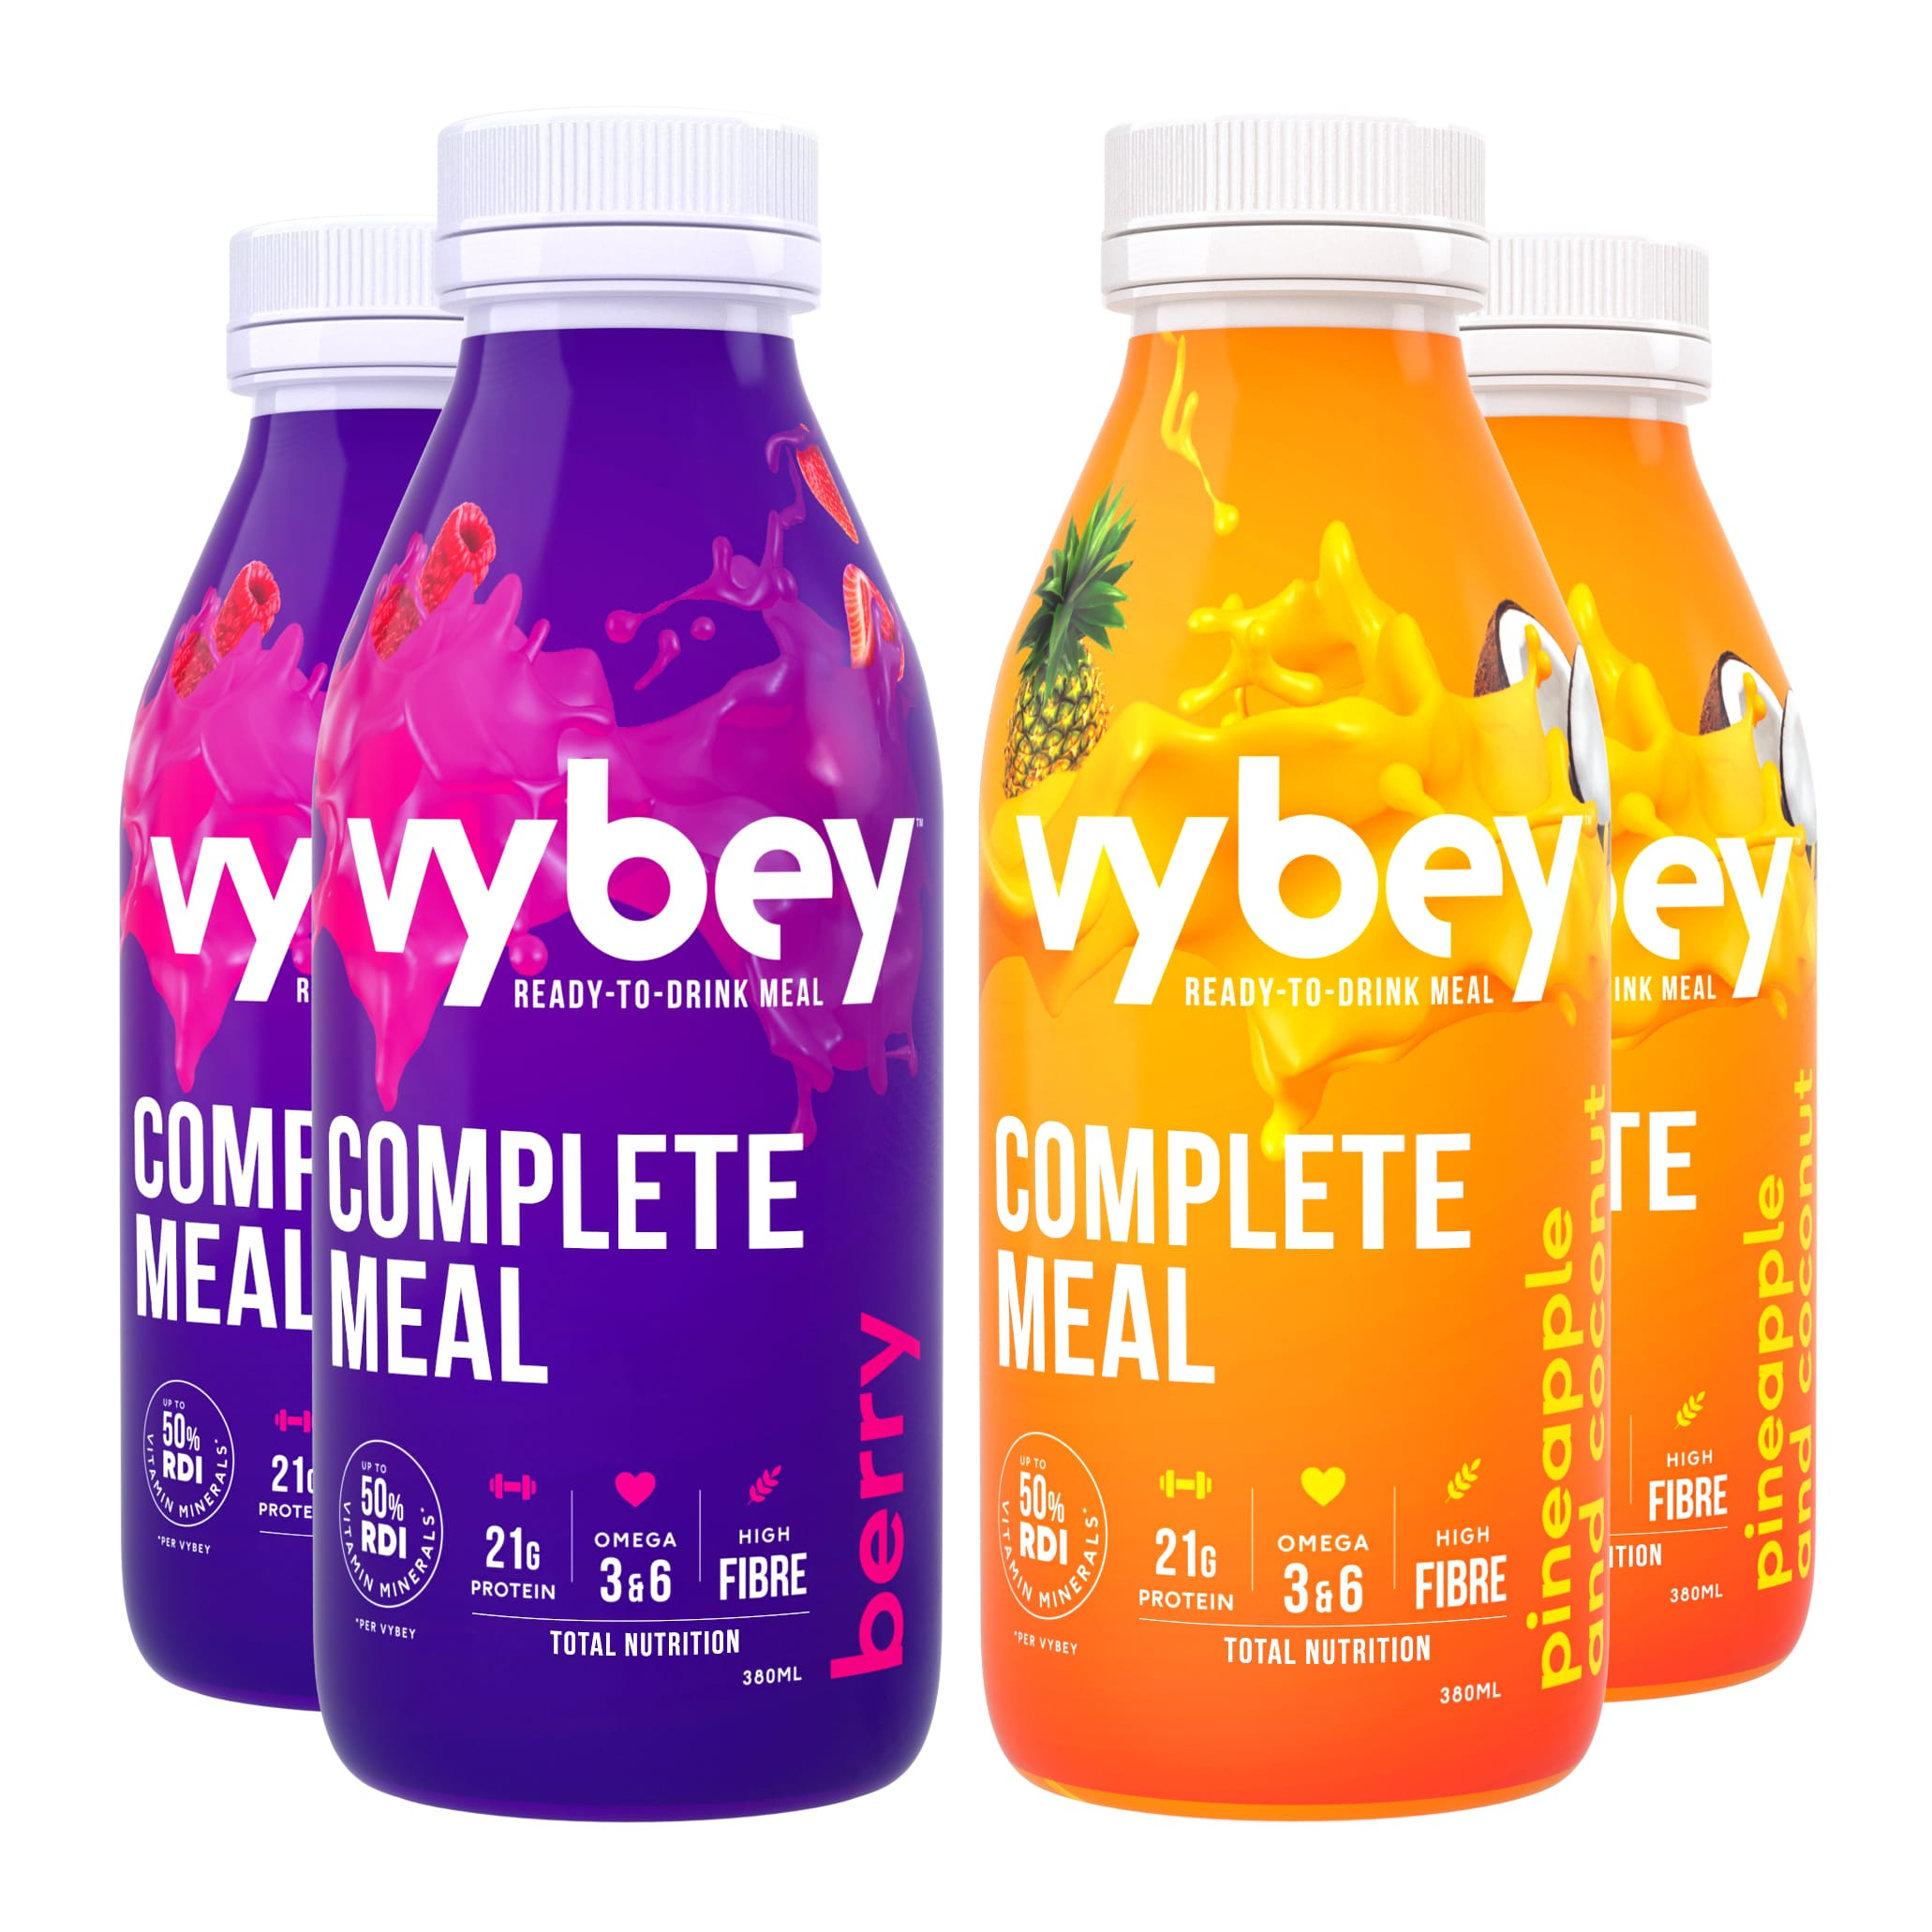 vybey Complete Meal Drink Variety 24 Pack ($4.99 per bottle)